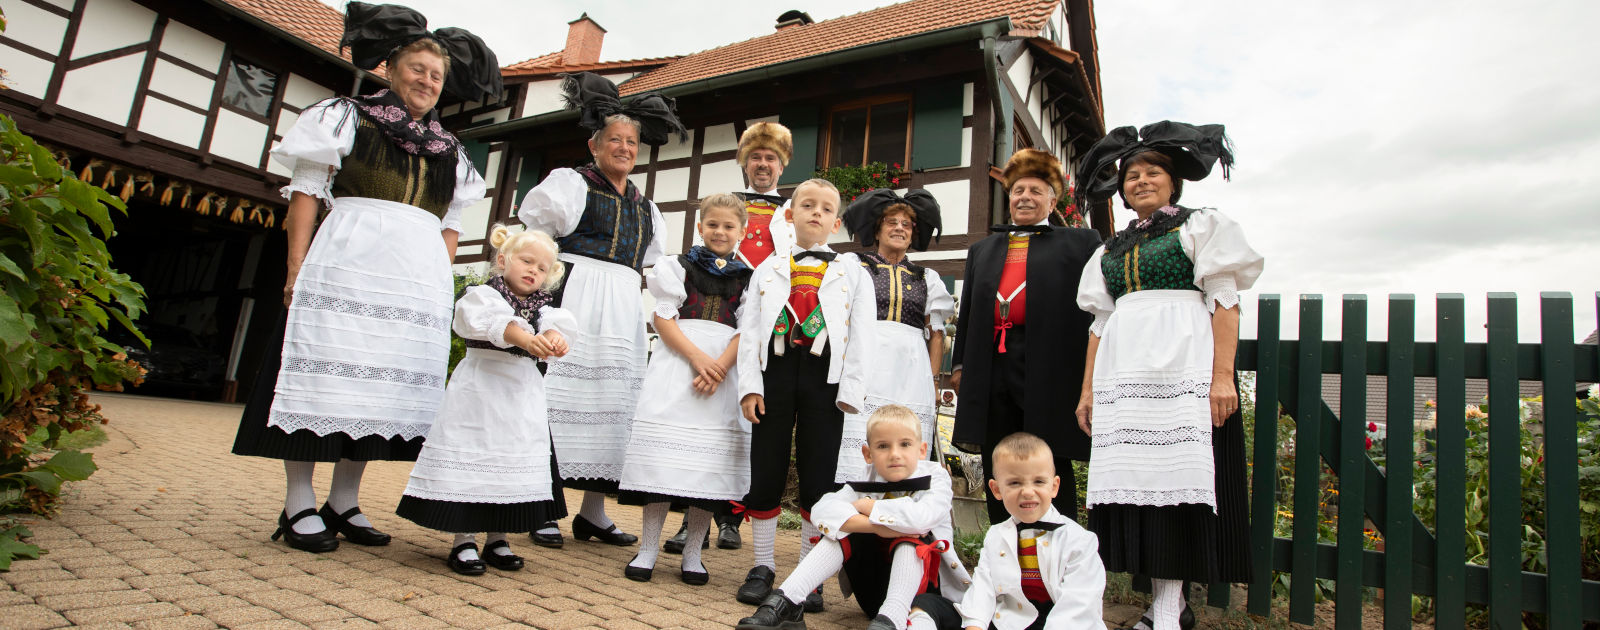 Familie in Hanauer-Tracht